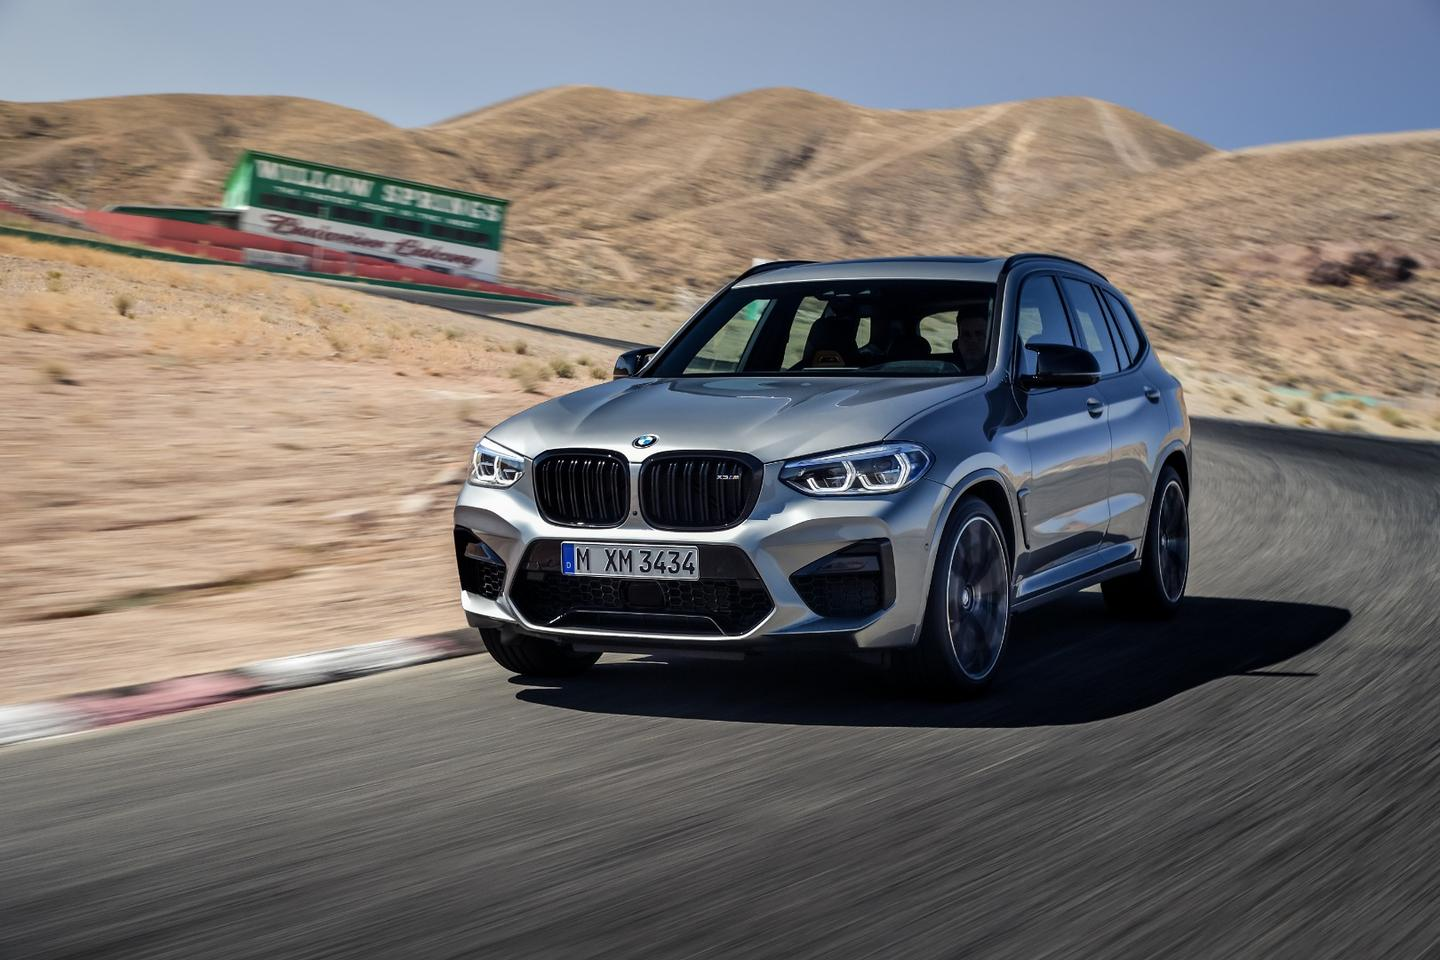 The 2020 BMW X3 M and X4 M will enter production in April of 2019 at BMW's Spartanburg, South Carolina plant